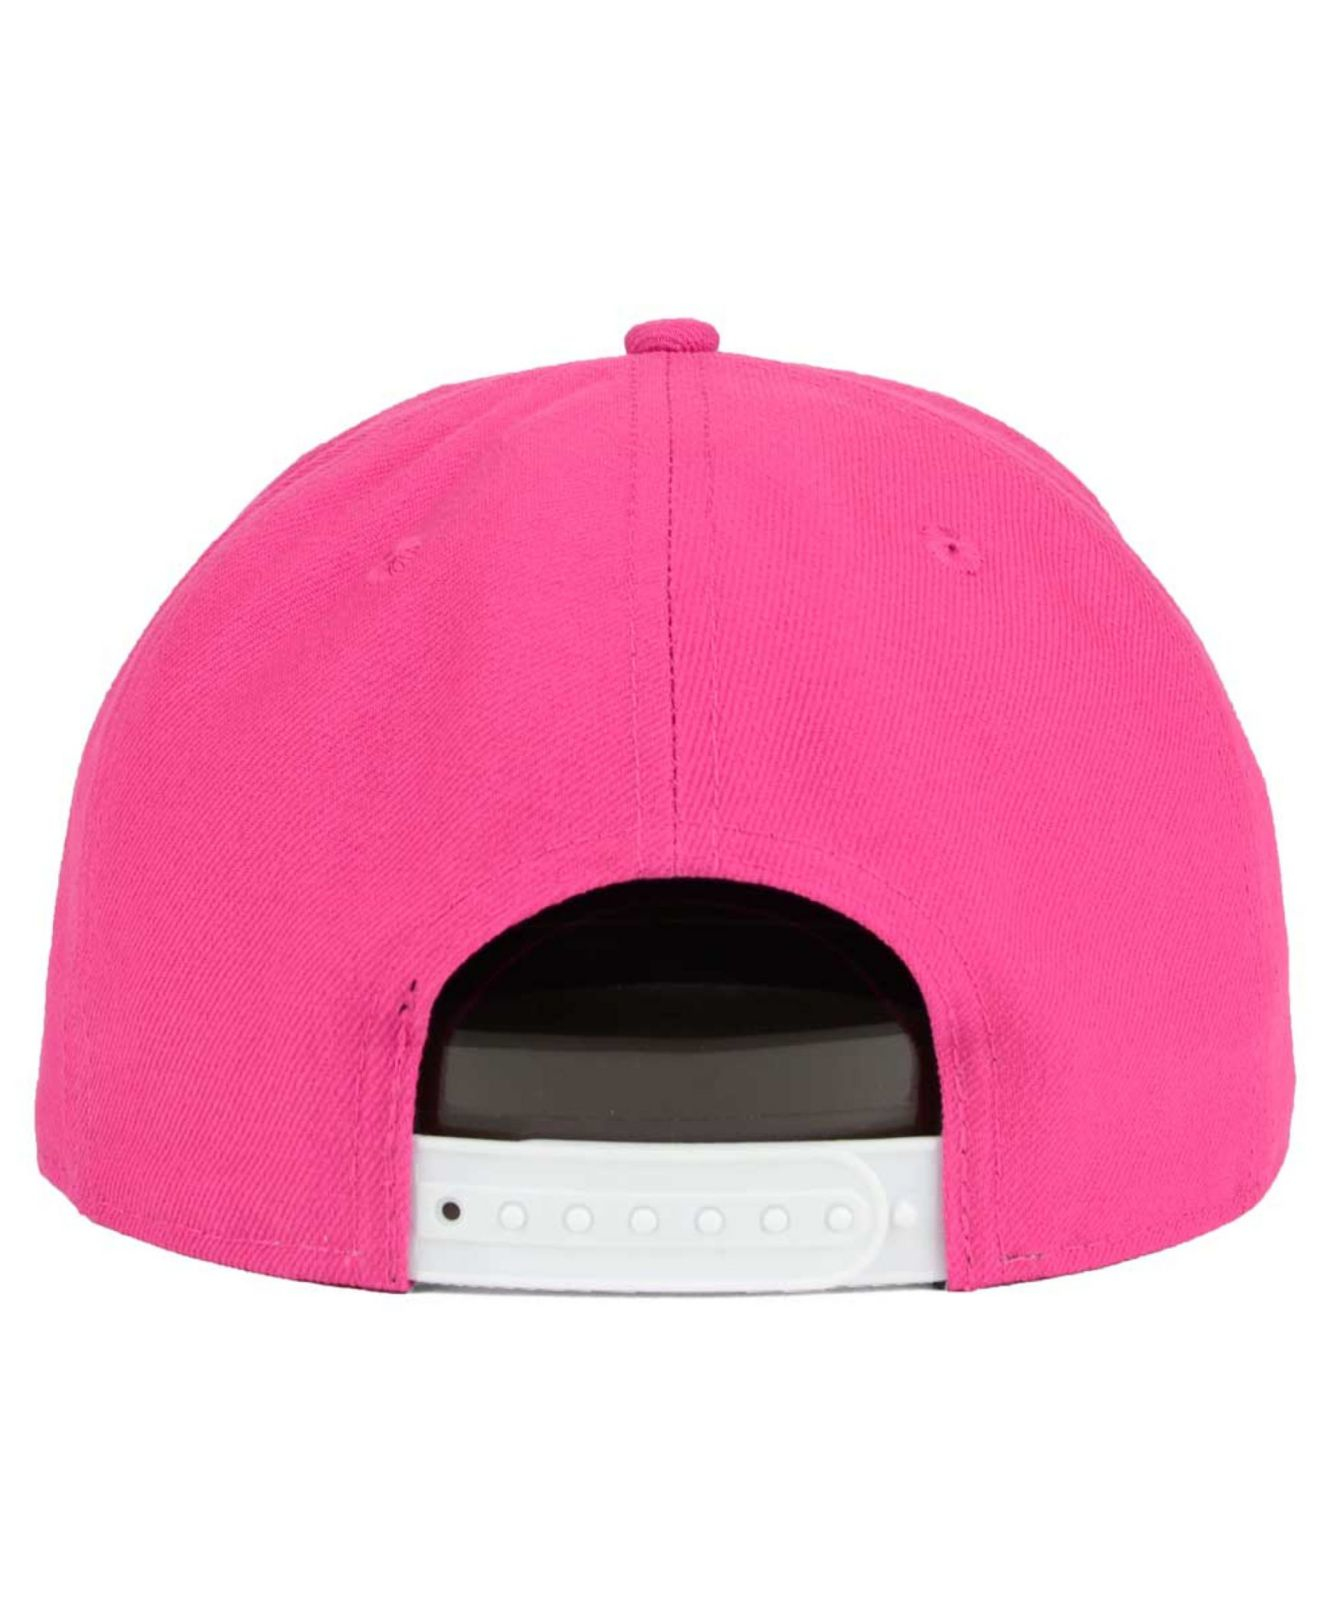 reputable site 71f54 81a9b Lyst - KTZ Chicago White Sox C-dub 9fifty Snapback Cap in Pink for Men